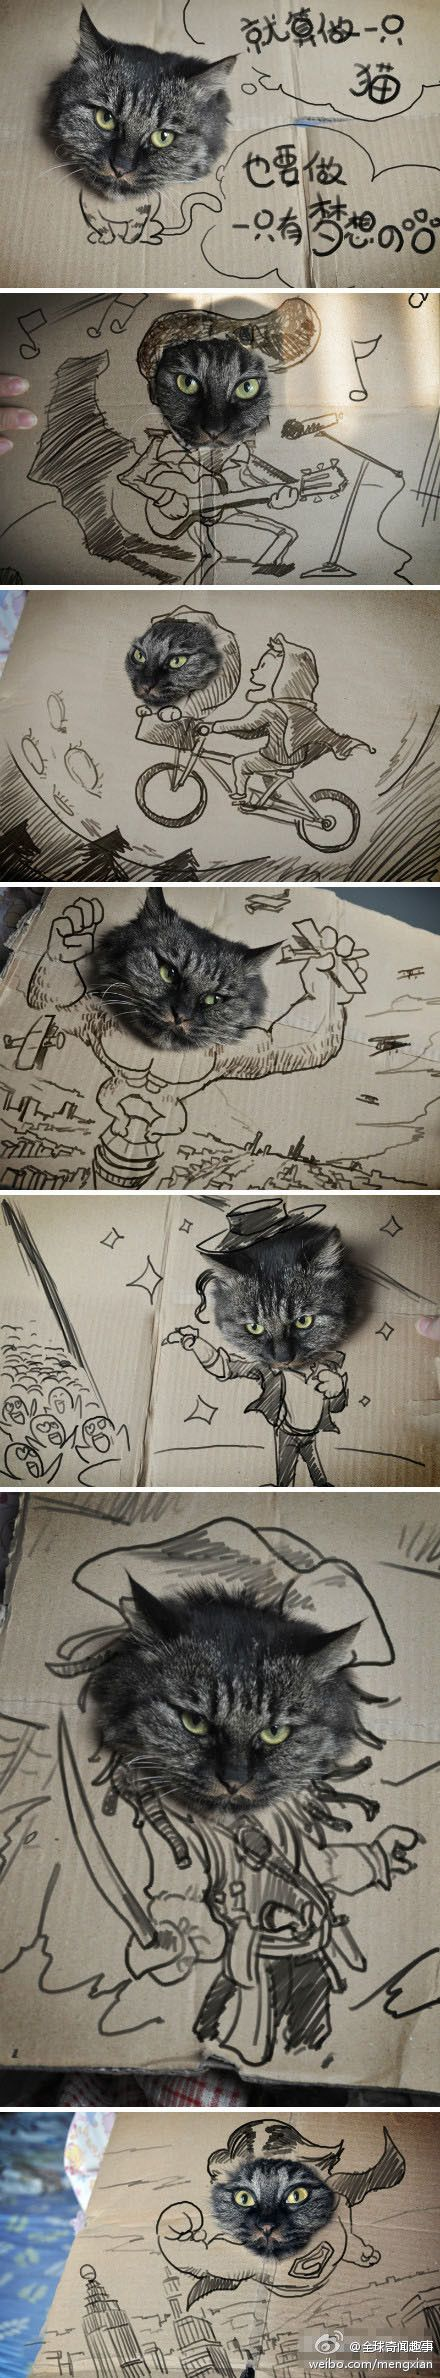 best images about gatos y dibujos on pinterest cats funny and